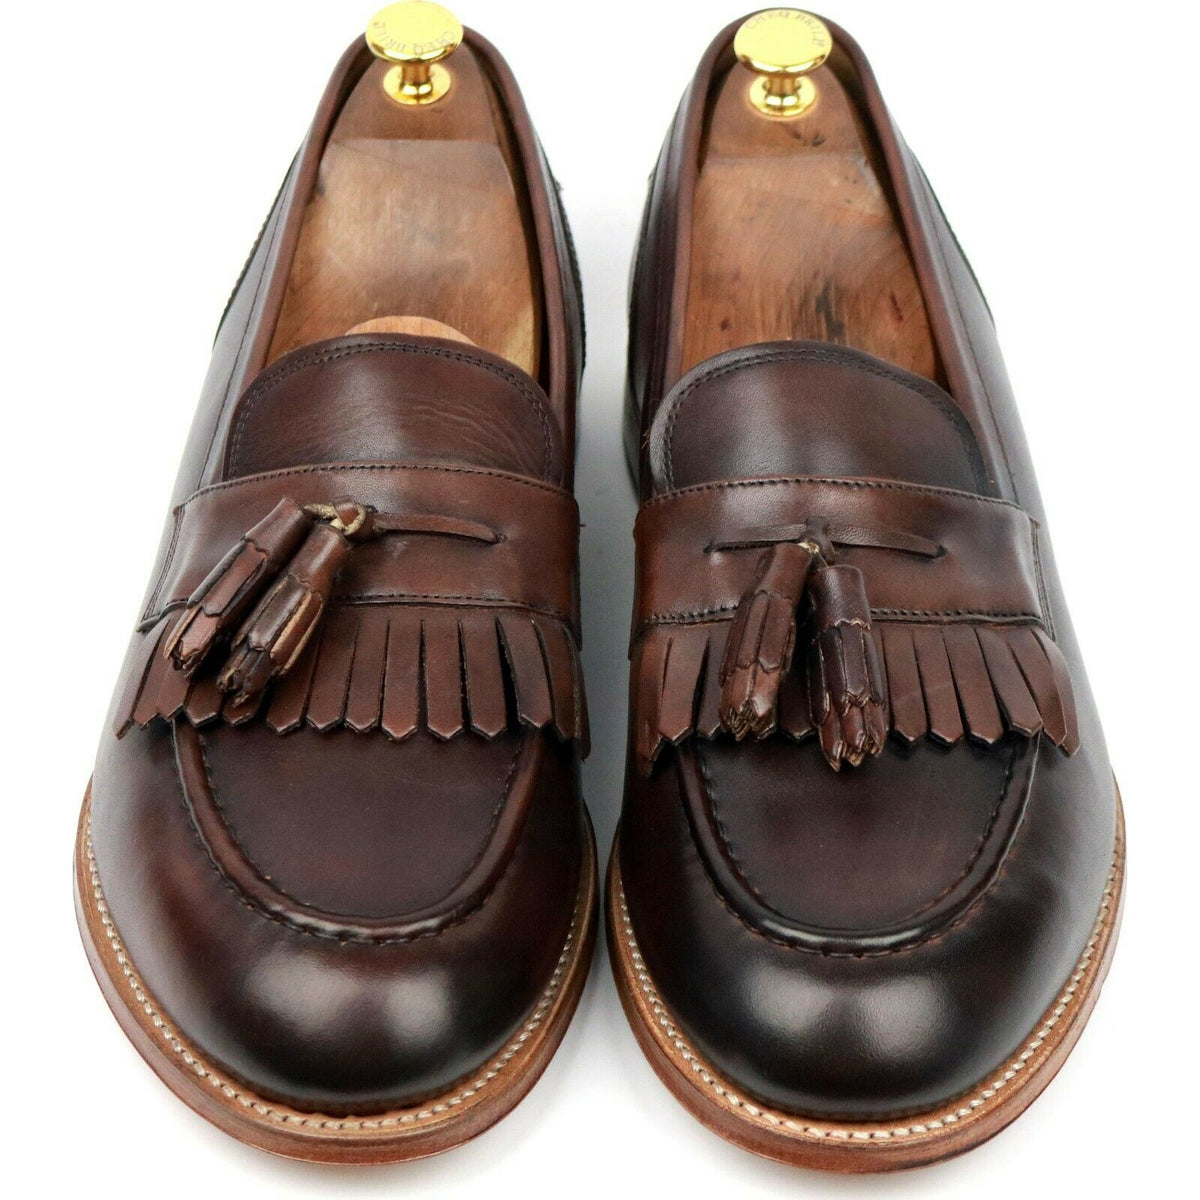 Grenson 'Mackenzie' Brown Leather Tassel Loafers UK 11 E